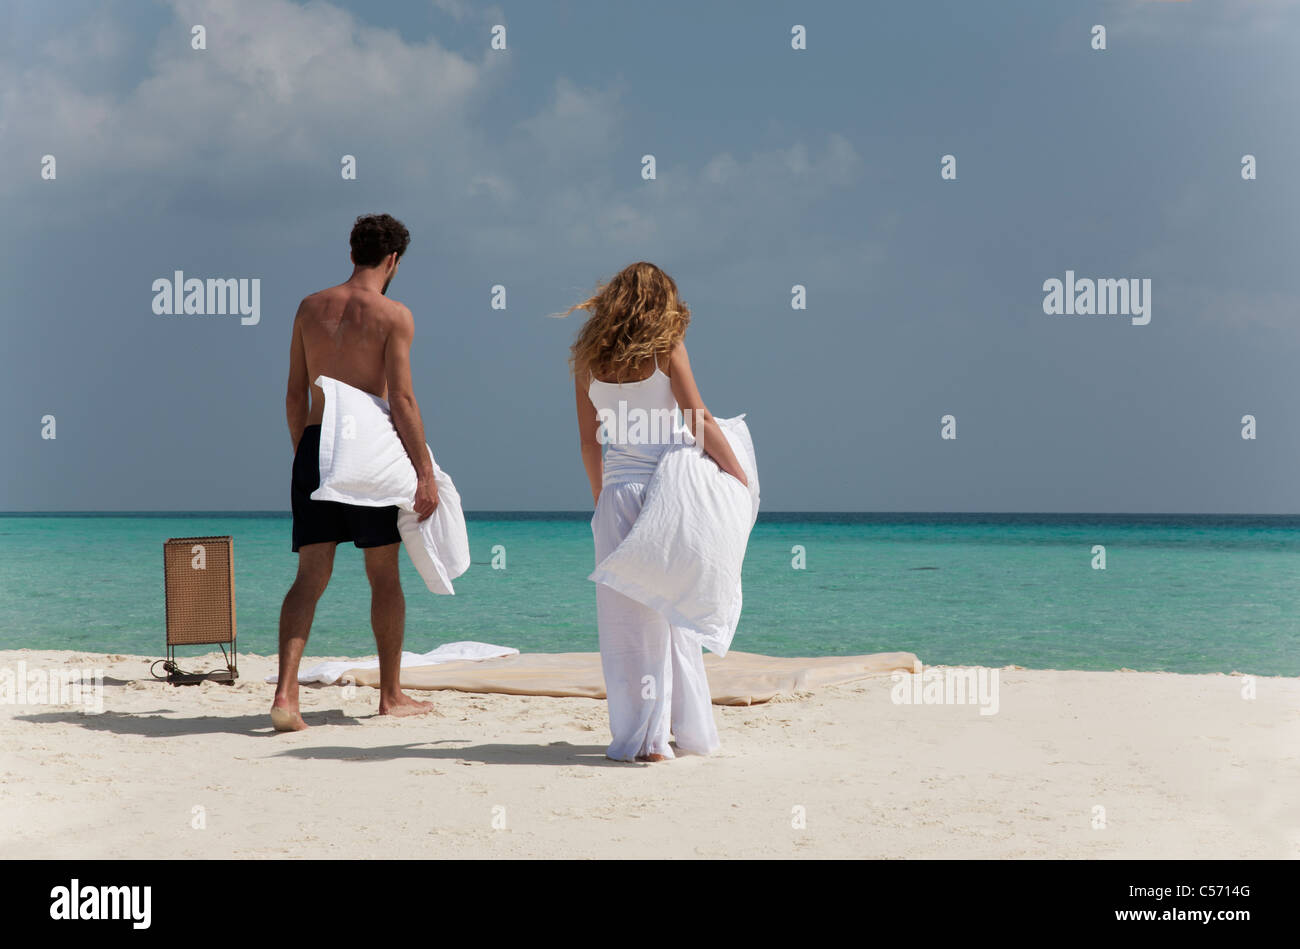 Couple making bed on tropical beach - Stock Image